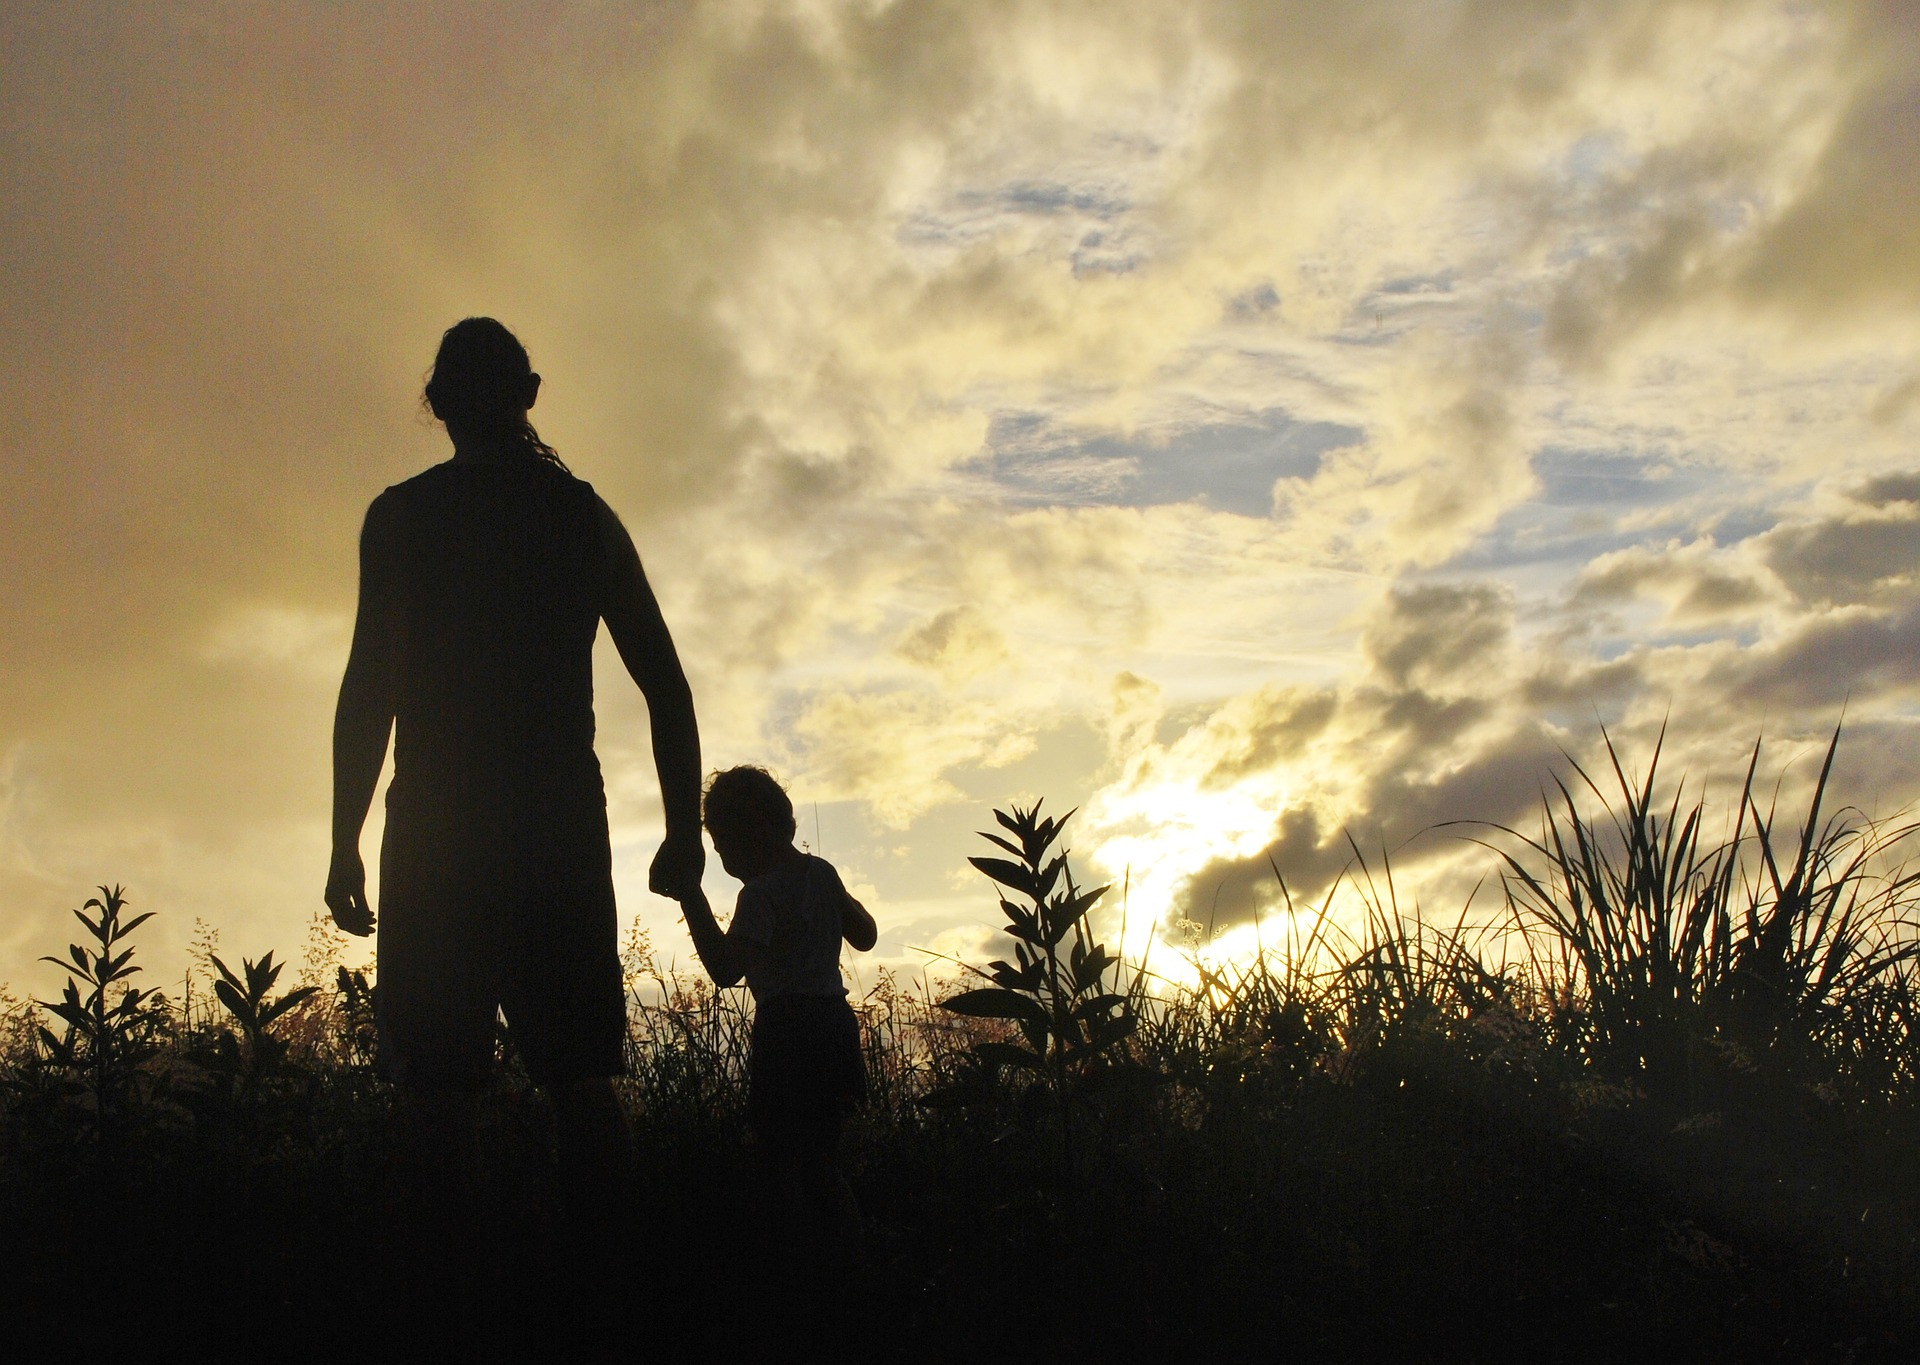 A University of Washington study finds that parents who took mindfulness lessons were better able to manage their emotions, and their children's behavior improved, as well. Photo of a father walking with his young son.